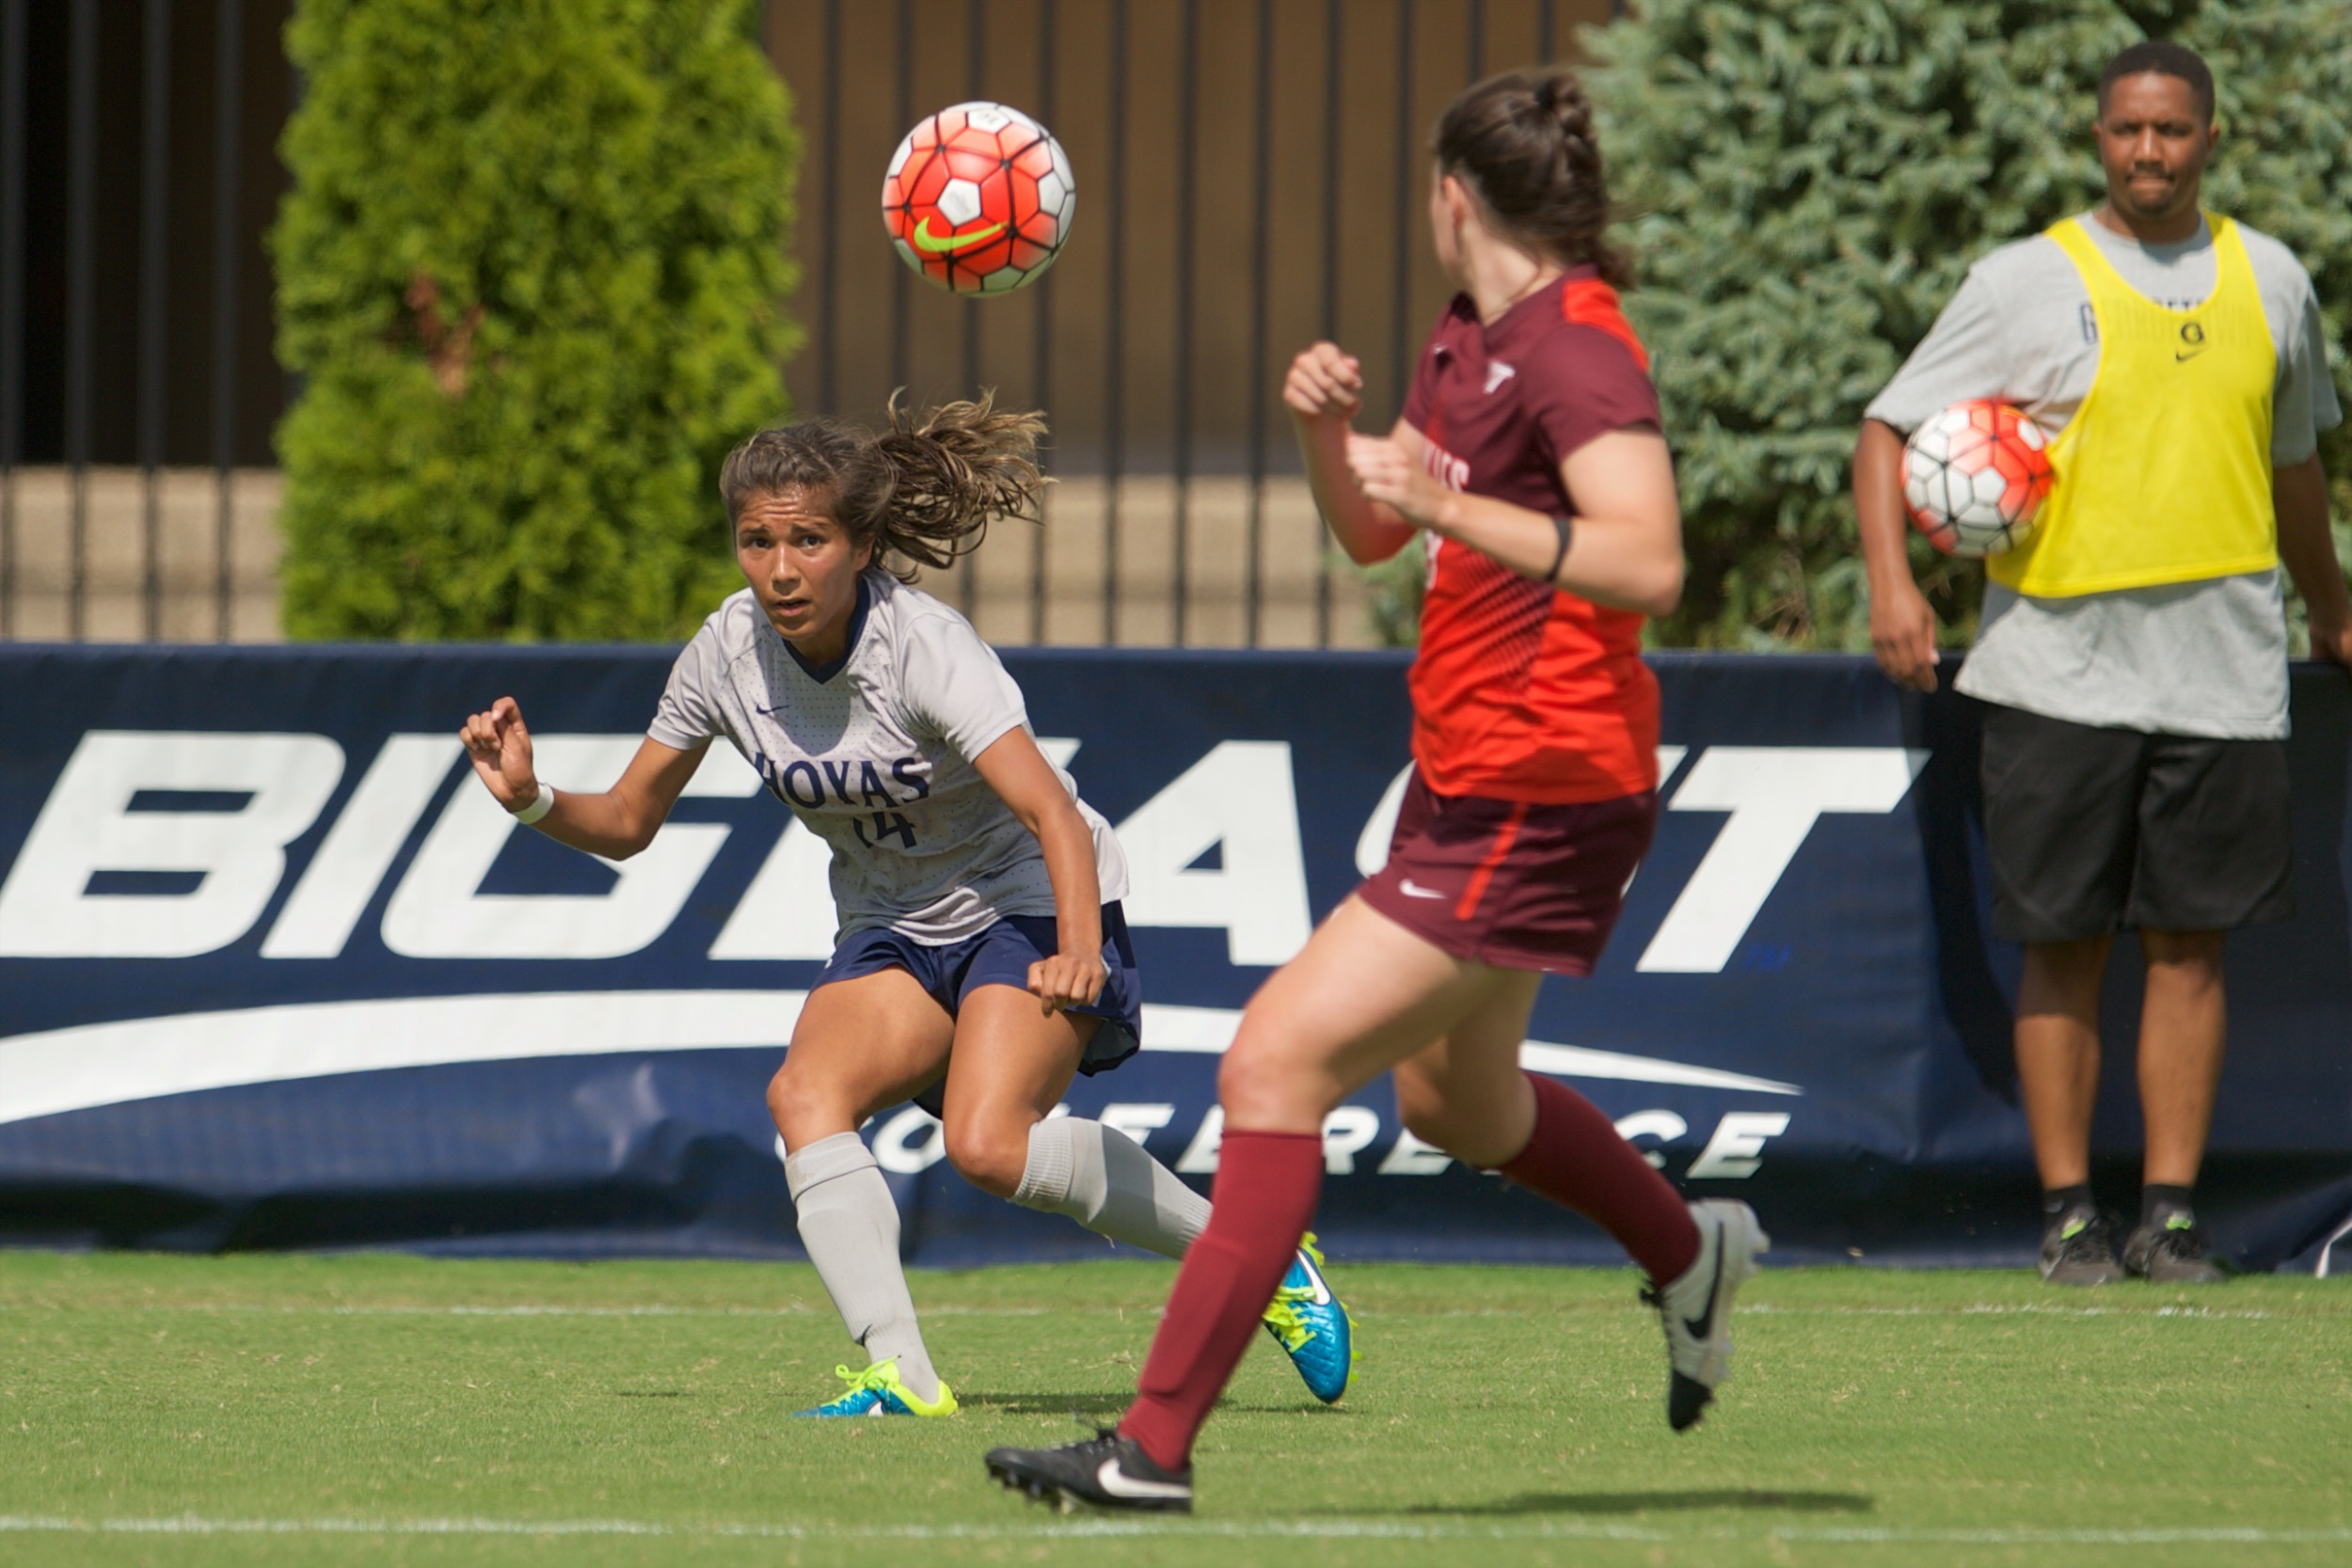 The Georgetown University women's soccer team begins BIG EAST Conference play this weekend, playing at Providence, on Sunday, Sept. 27.  The game kicks off at 1 p.m.